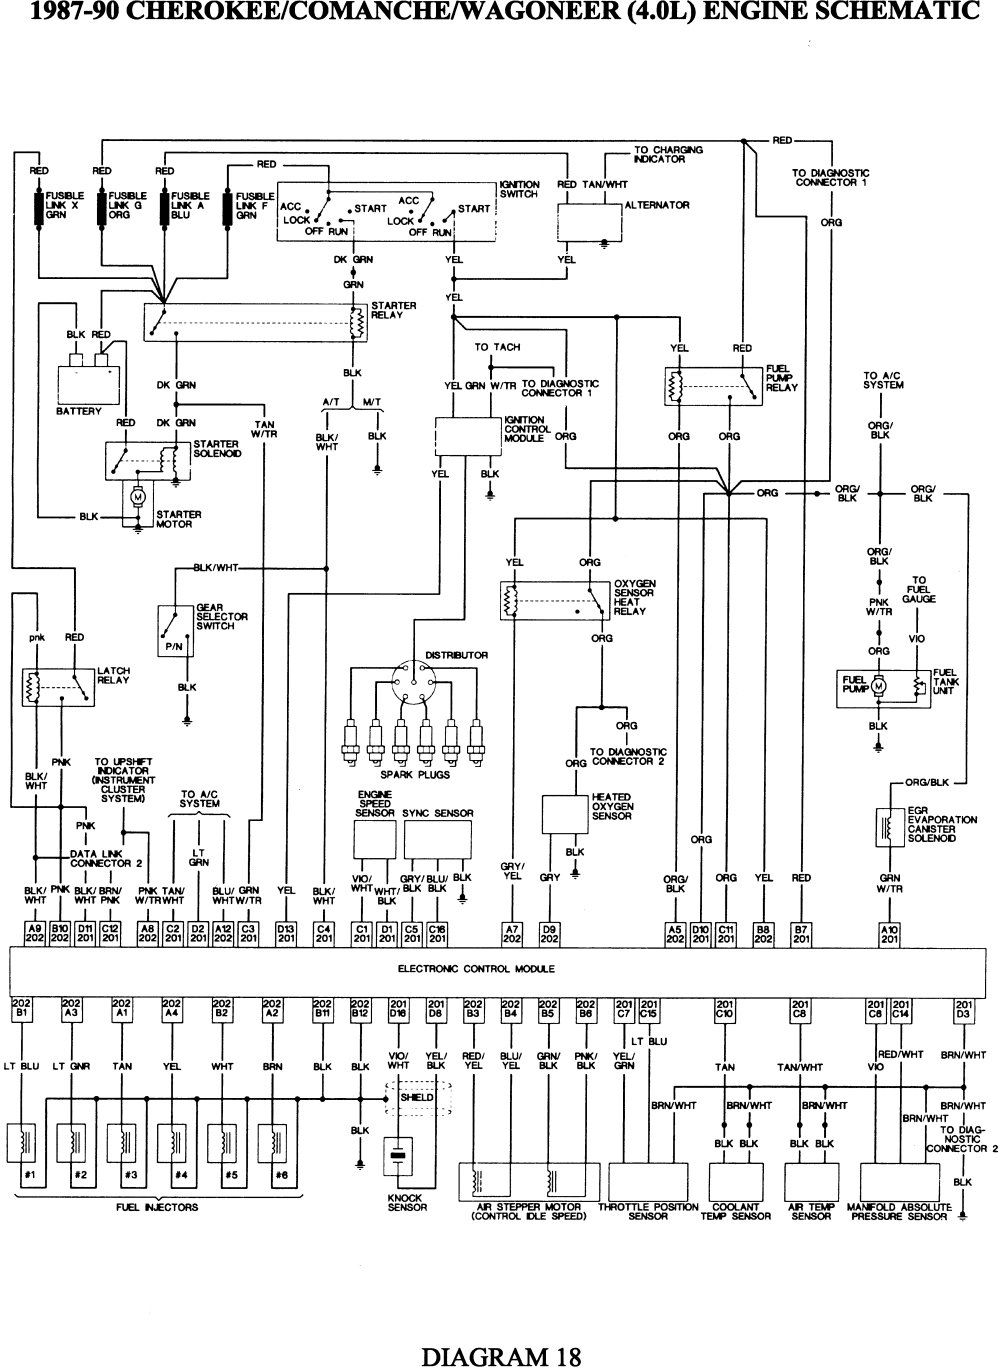 wire diagram 86 jeep mj wiring diagram schematic 1991 jeep comanche engine diagram wiring diagram schematic [ 1000 x 1369 Pixel ]